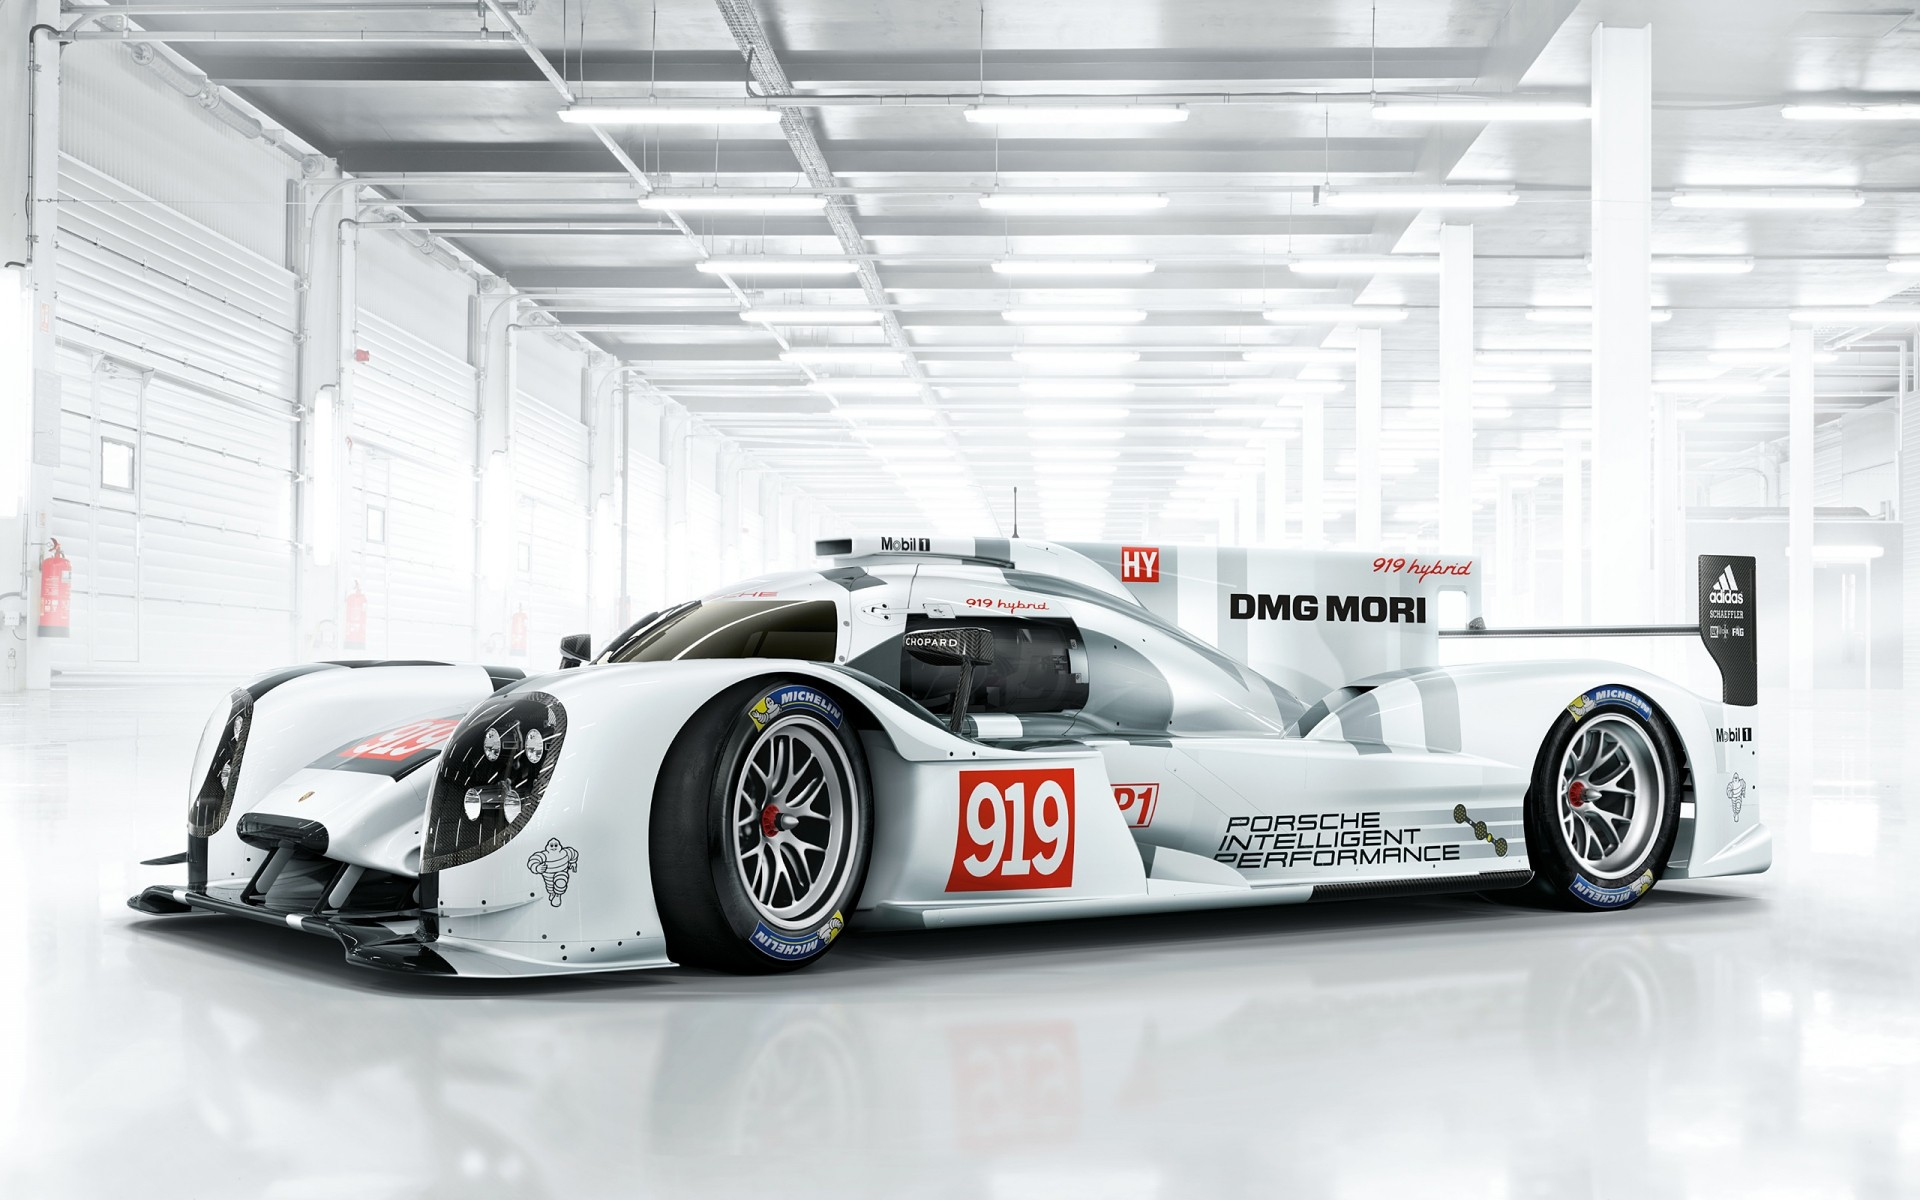 porsche car race vehicle transportation system competition wheel power fast track hurry speed drive international auto racing championship porsche 919 porche hybrid super cars muscle cars